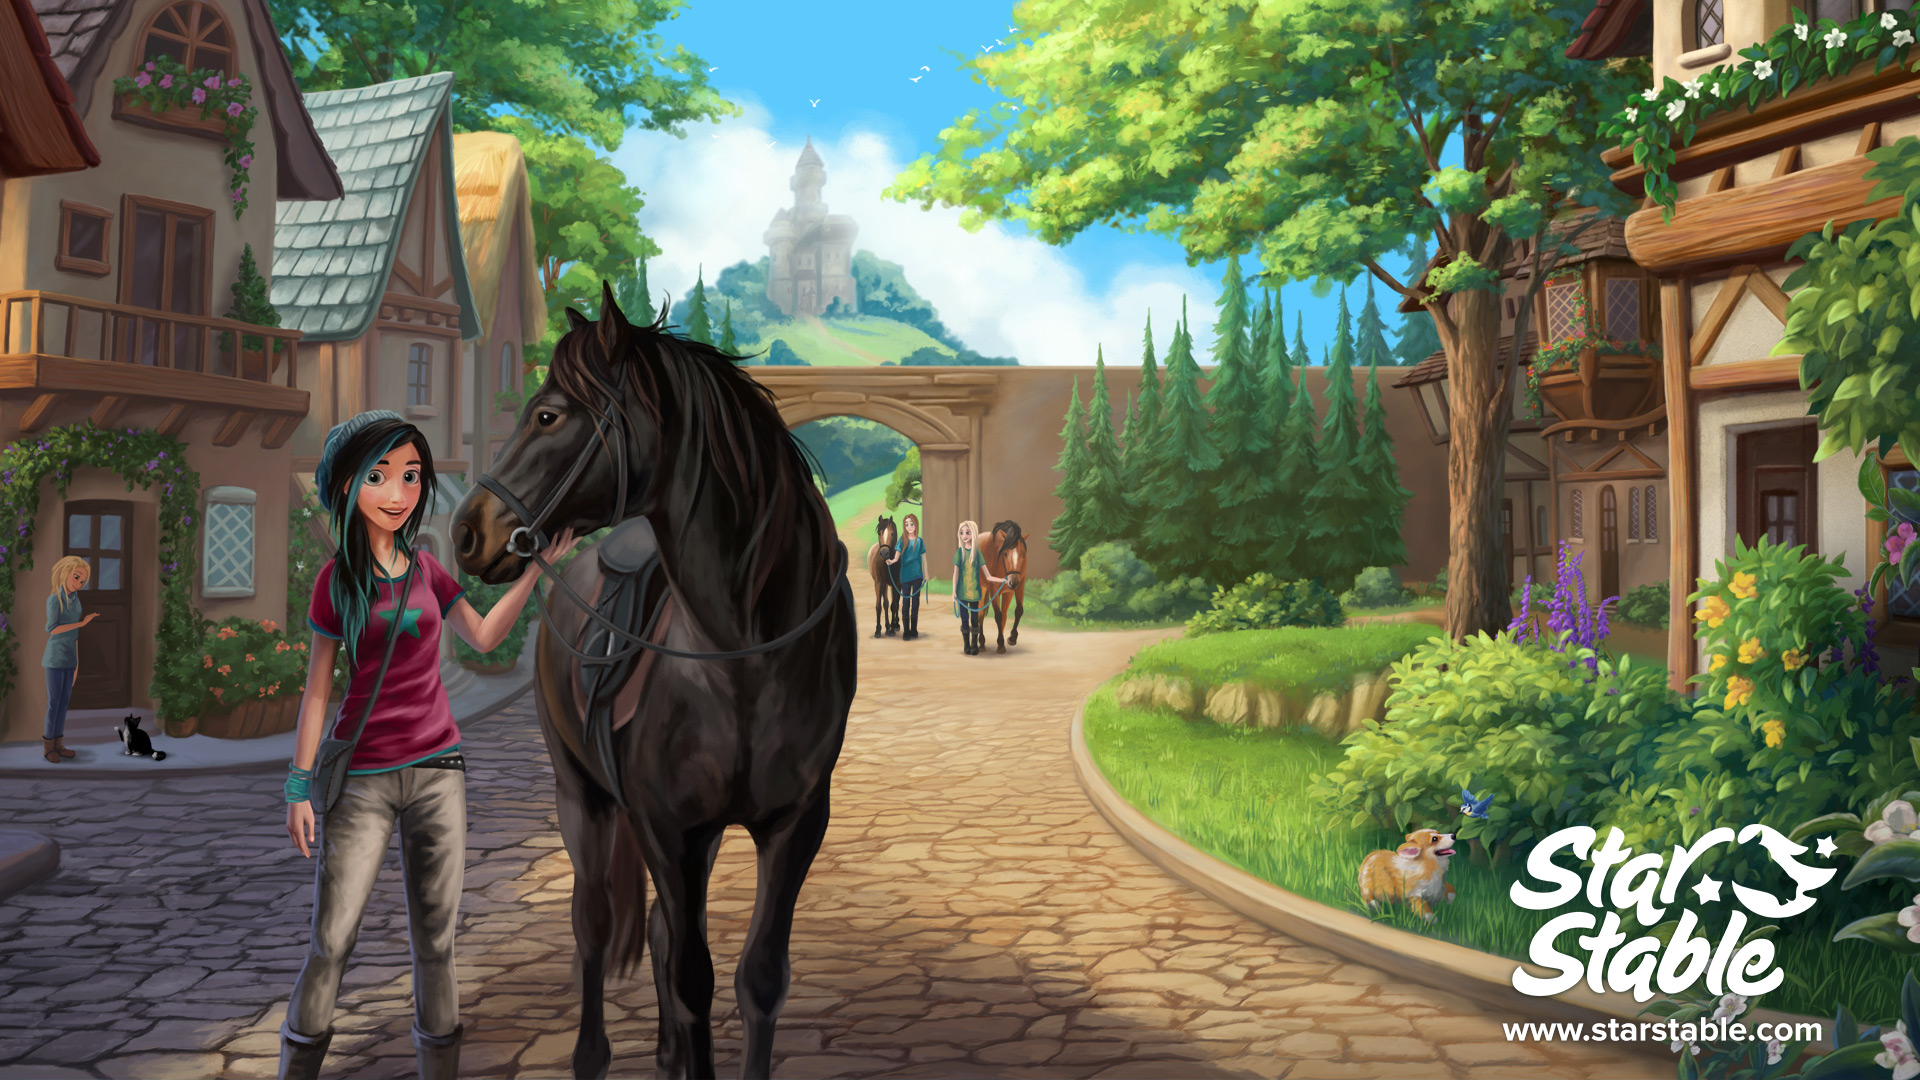 Download gratis fan art bronnen star stable - Fan wallpaper download ...